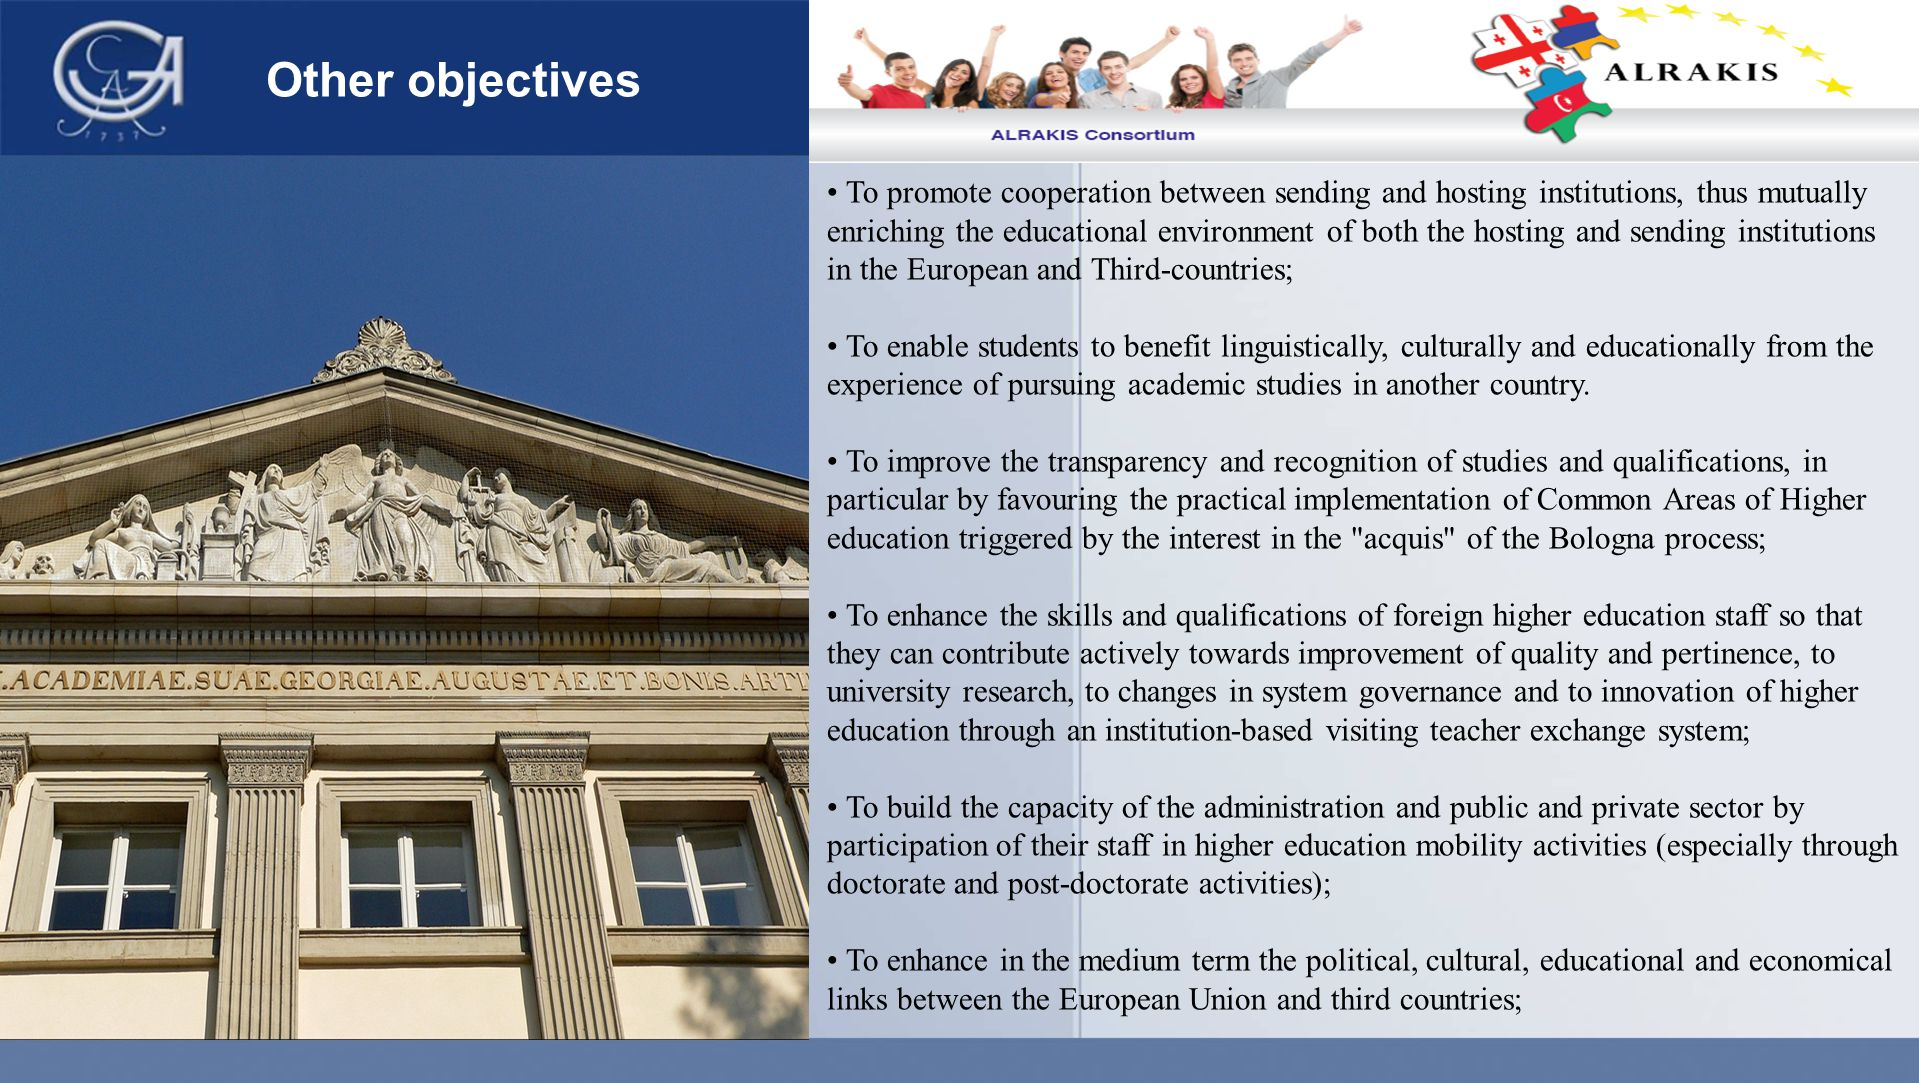 Other objectives To promote cooperation between sending and hosting institutions, thus mutually enriching the educational environment of both the hosting and sending institutions in the European and Third-countries; To enable students to benefit linguistically, culturally and educationally from the experience of pursuing academic studies in another country.